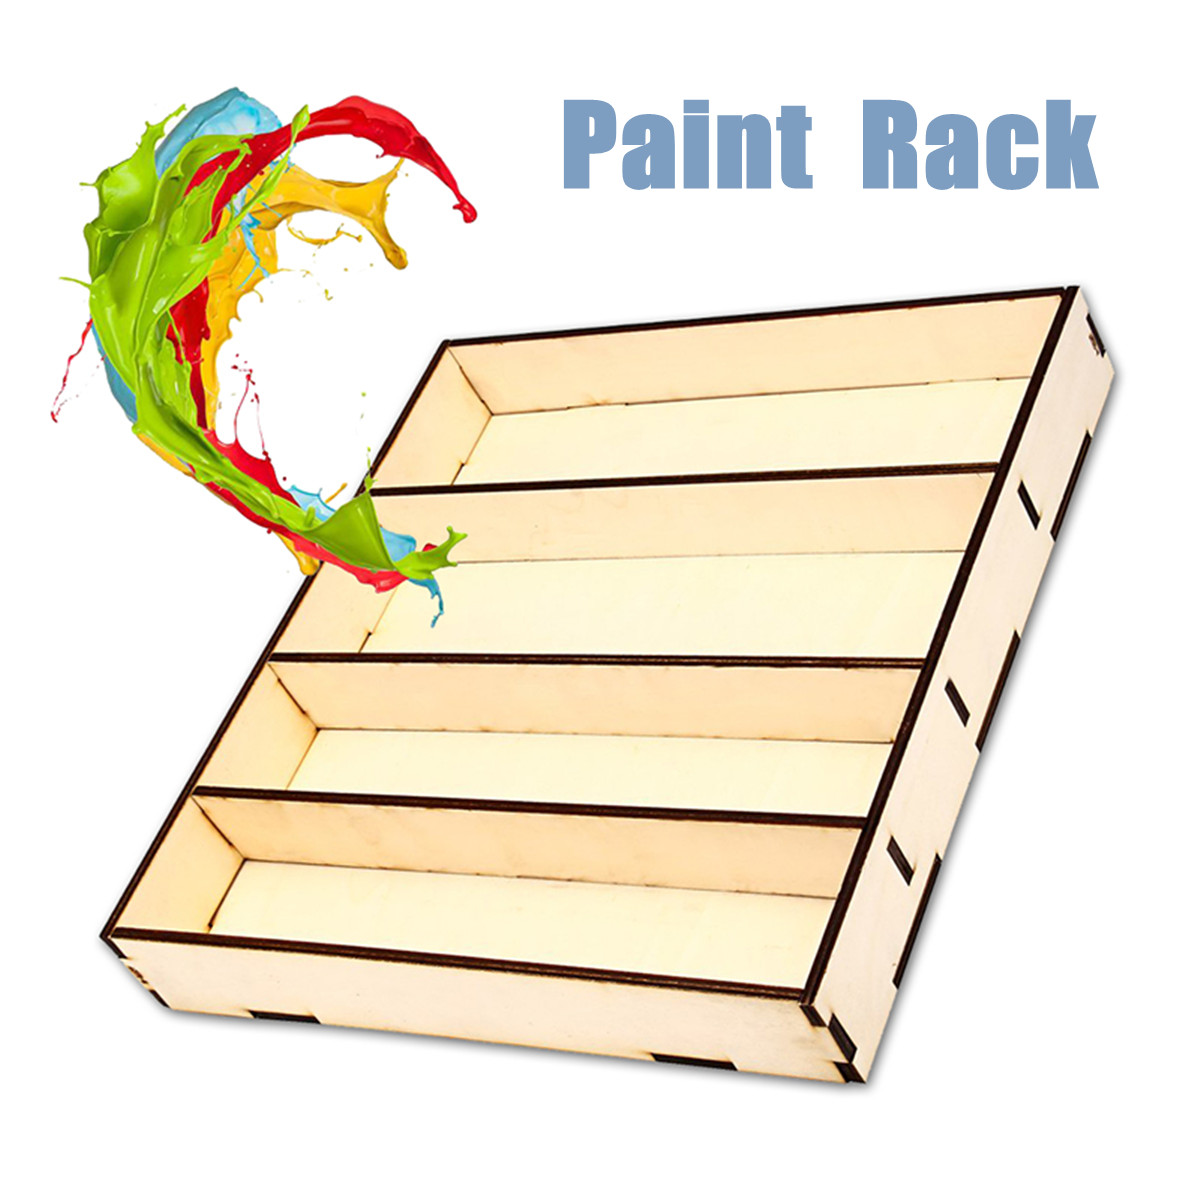 Wooden Paint Rack Acrylics Storage Stand Holder Box Drawing Tools Paint Modular Organizer Tool Storage Supplies 311x290x45mm